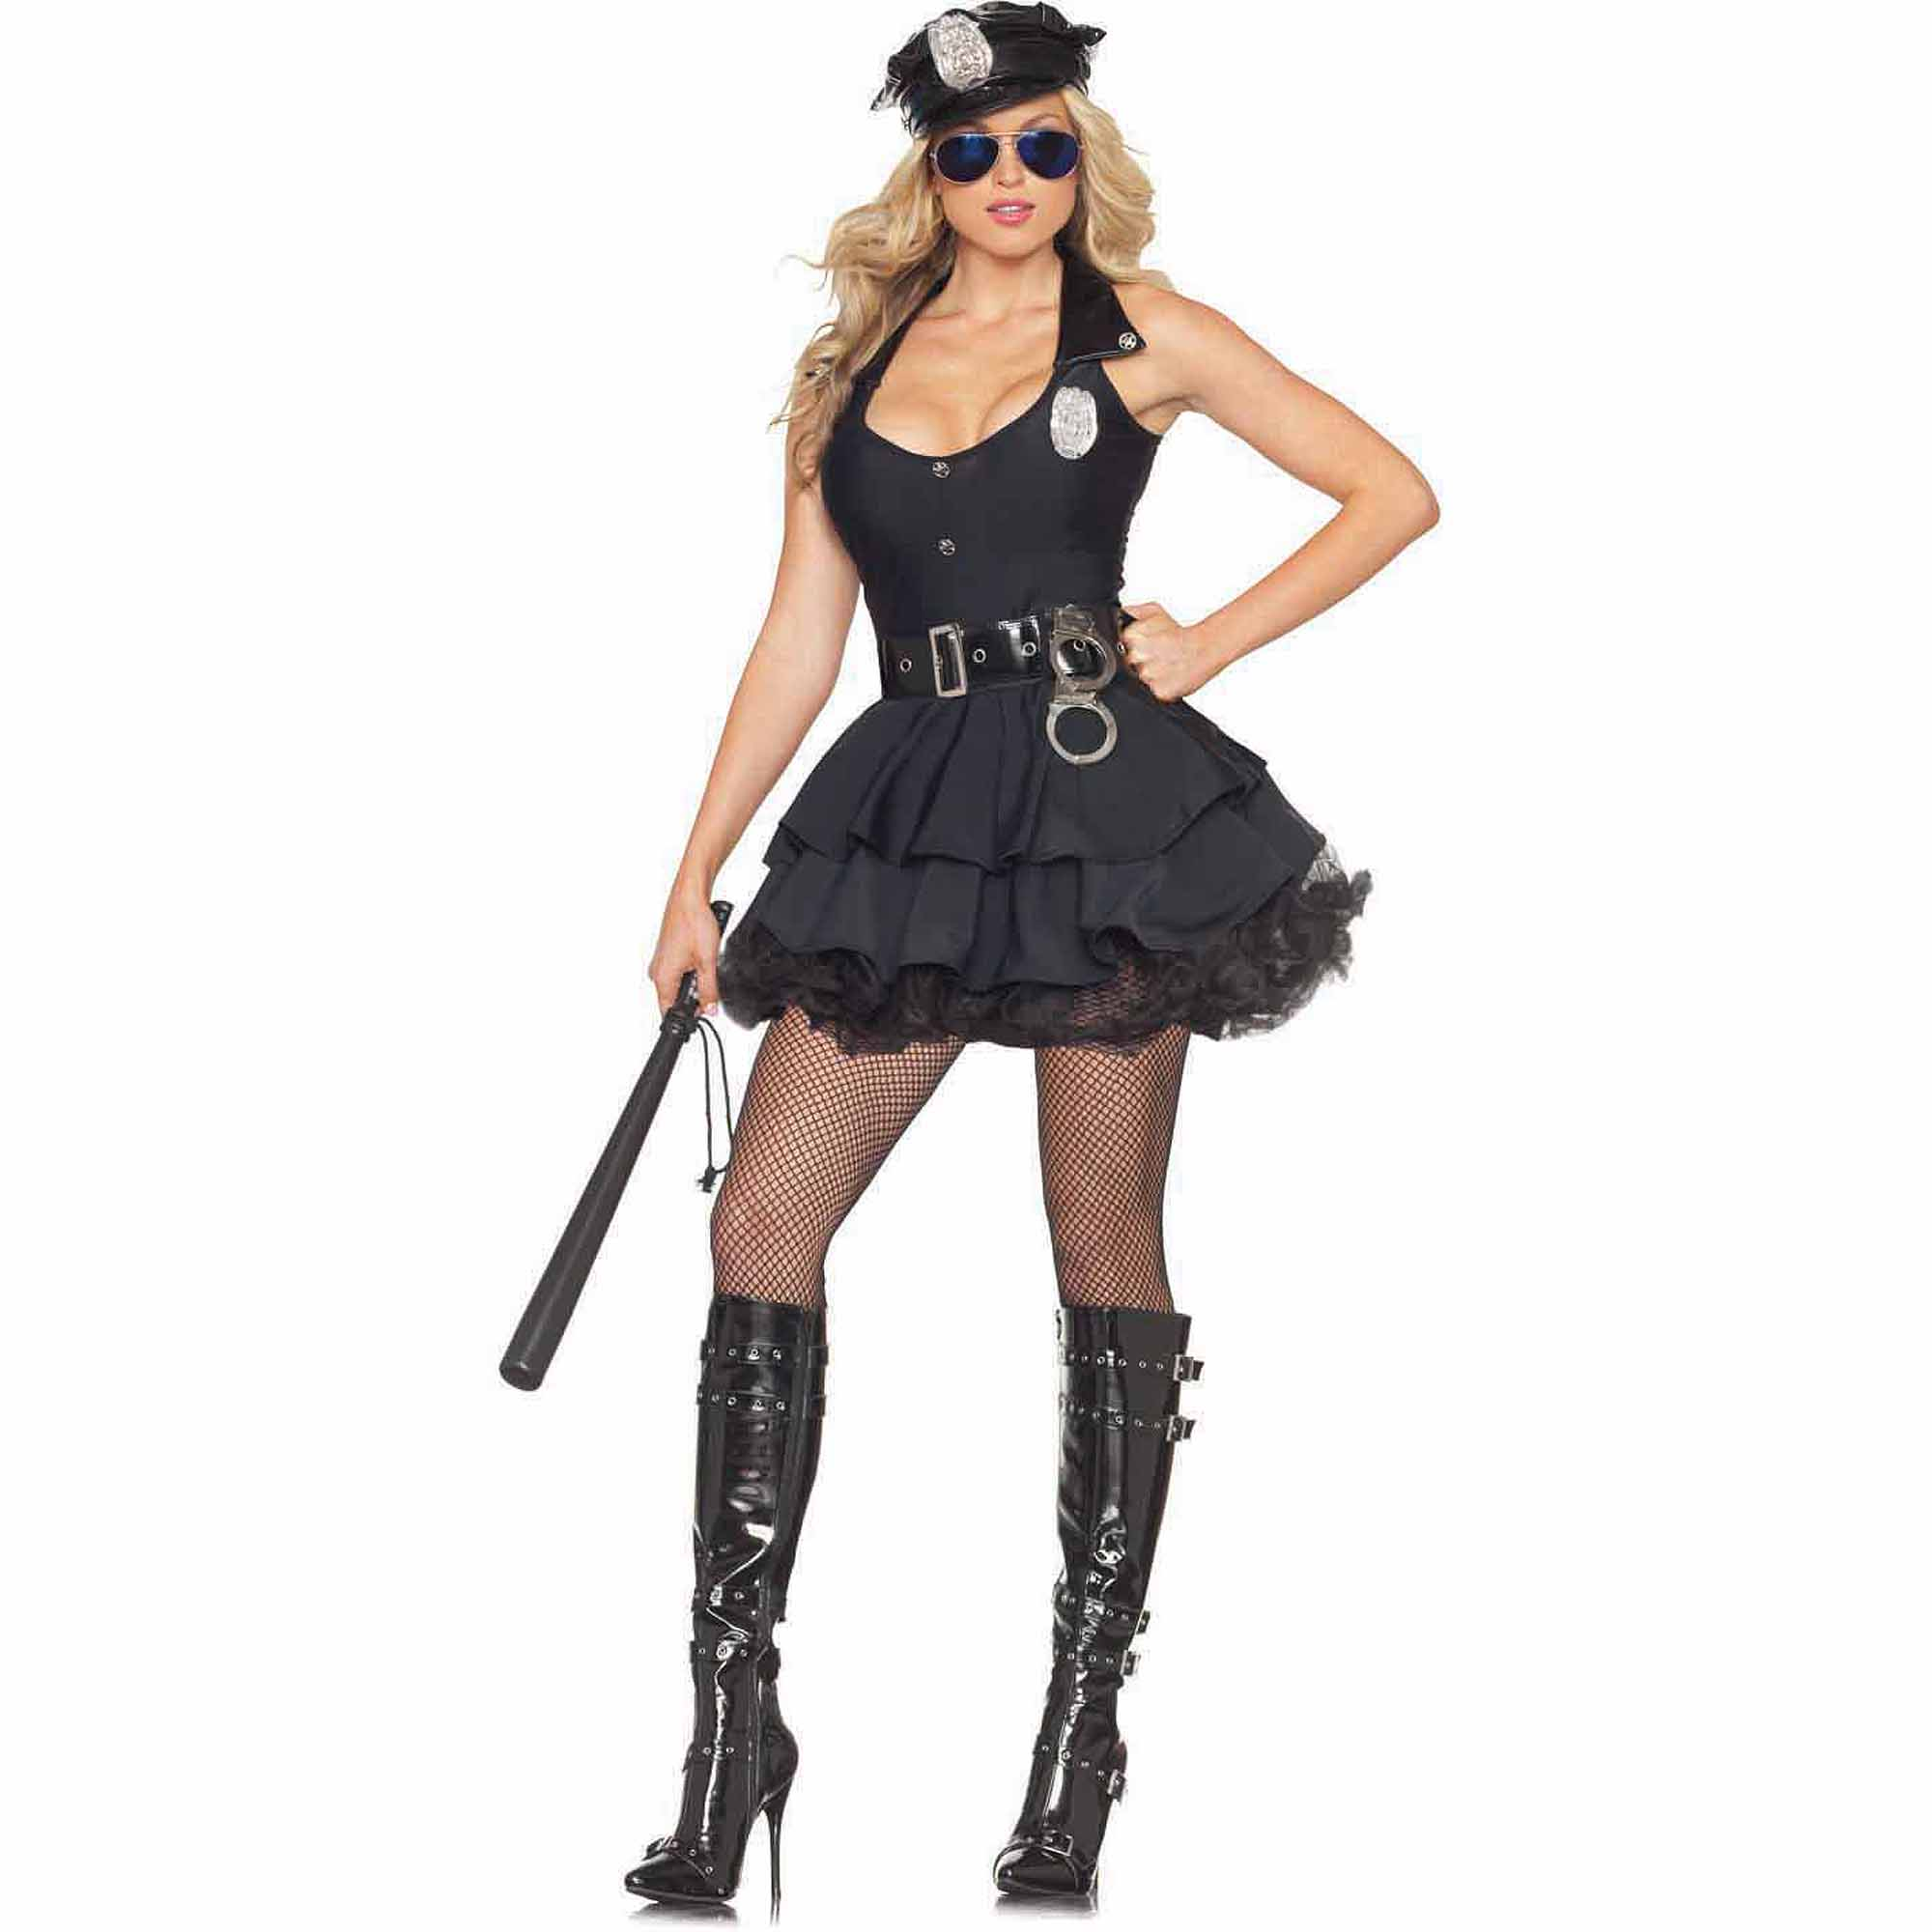 Sexy Cop Adult Halloween Costume